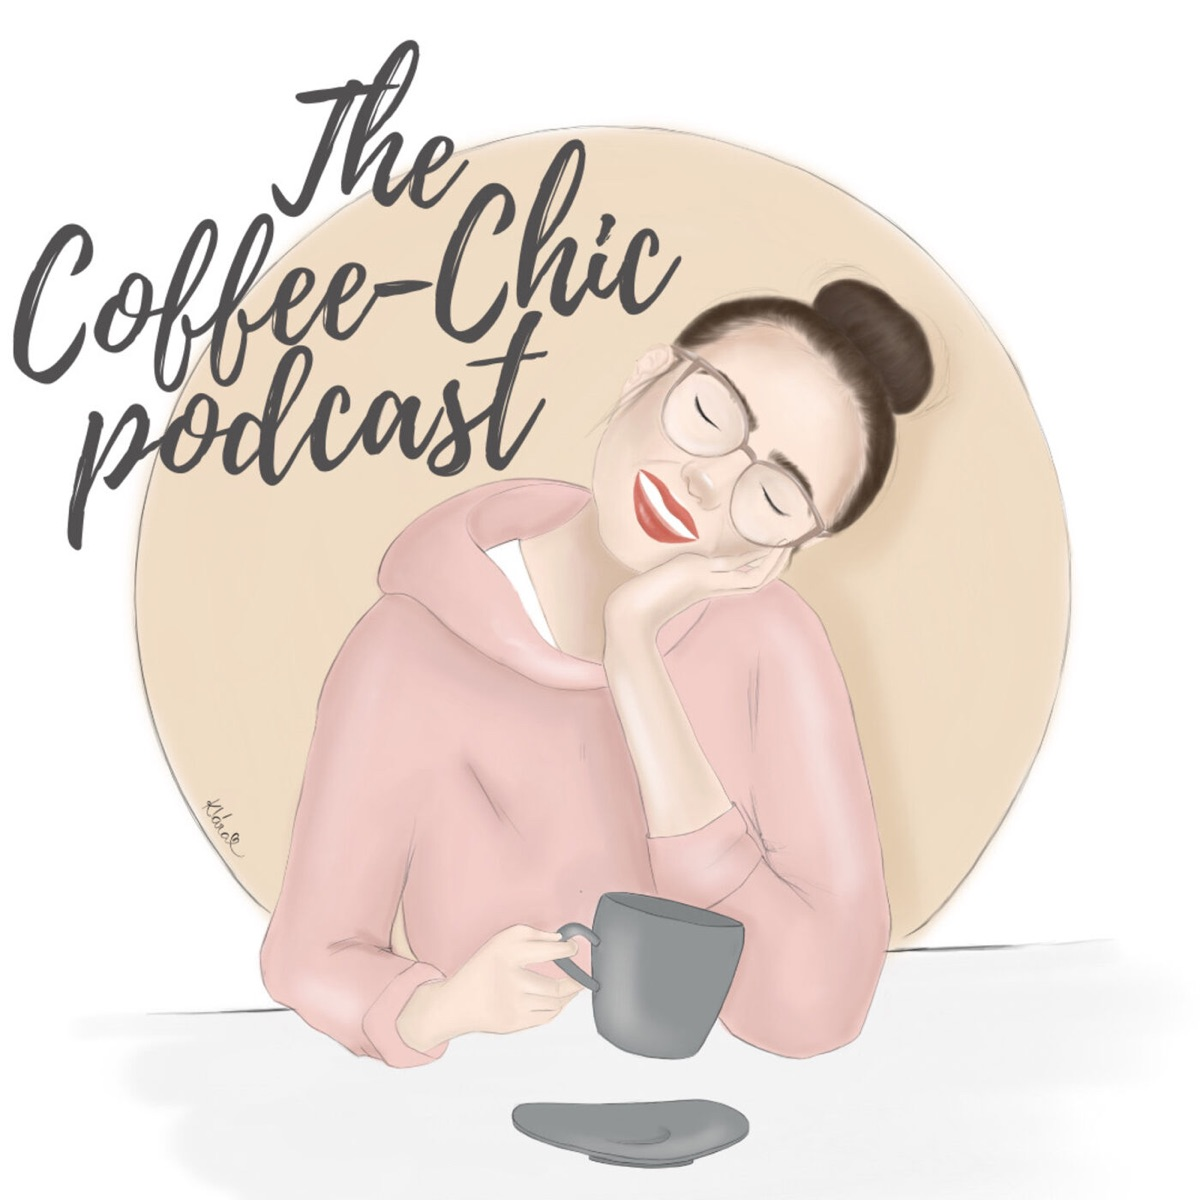 The Coffee-chic podcast